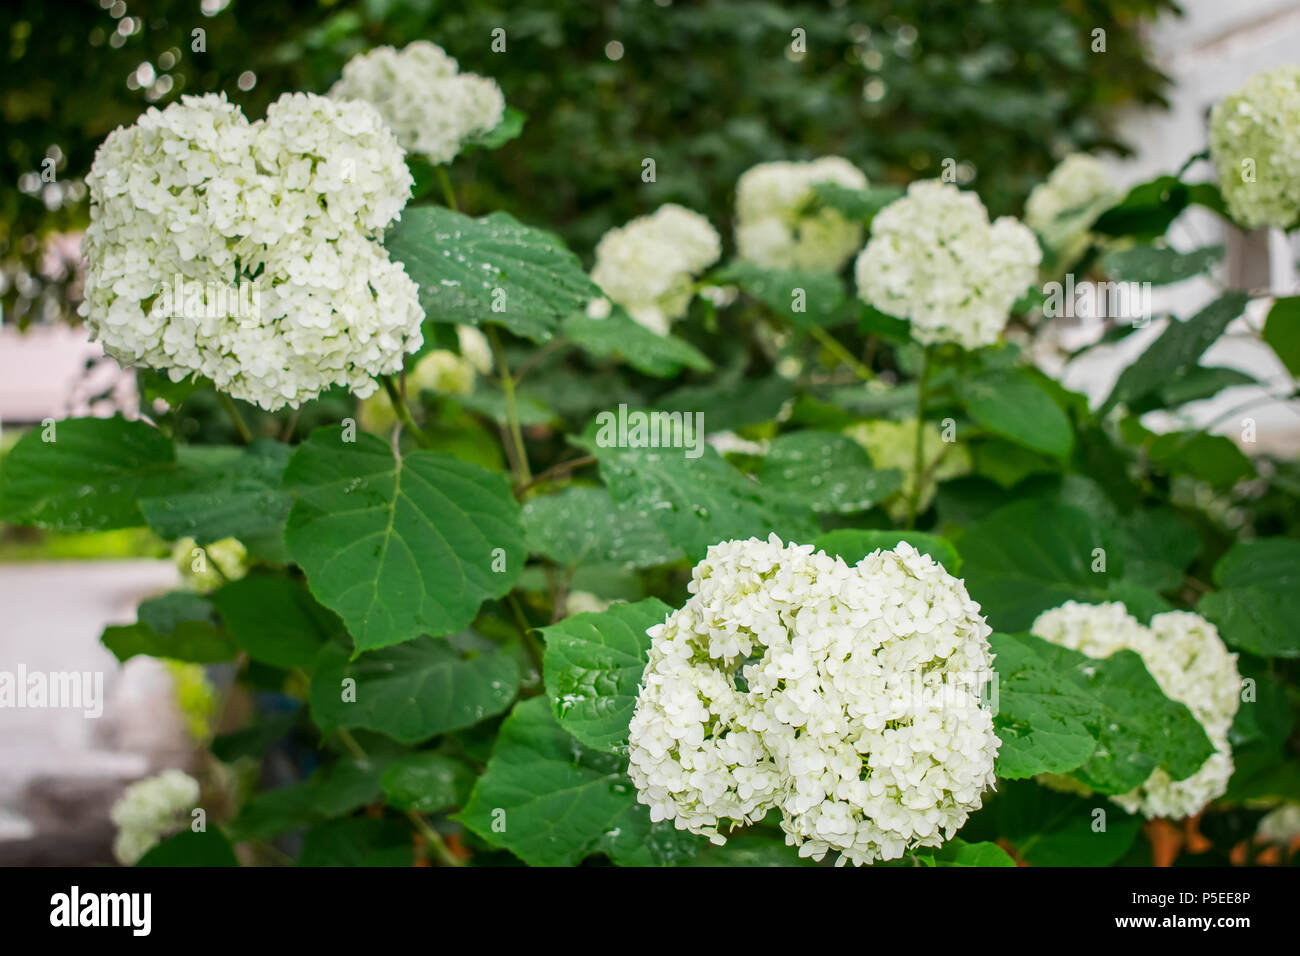 Spring Flowering Shrub Kalinin Decorative Round White Flowers Of A